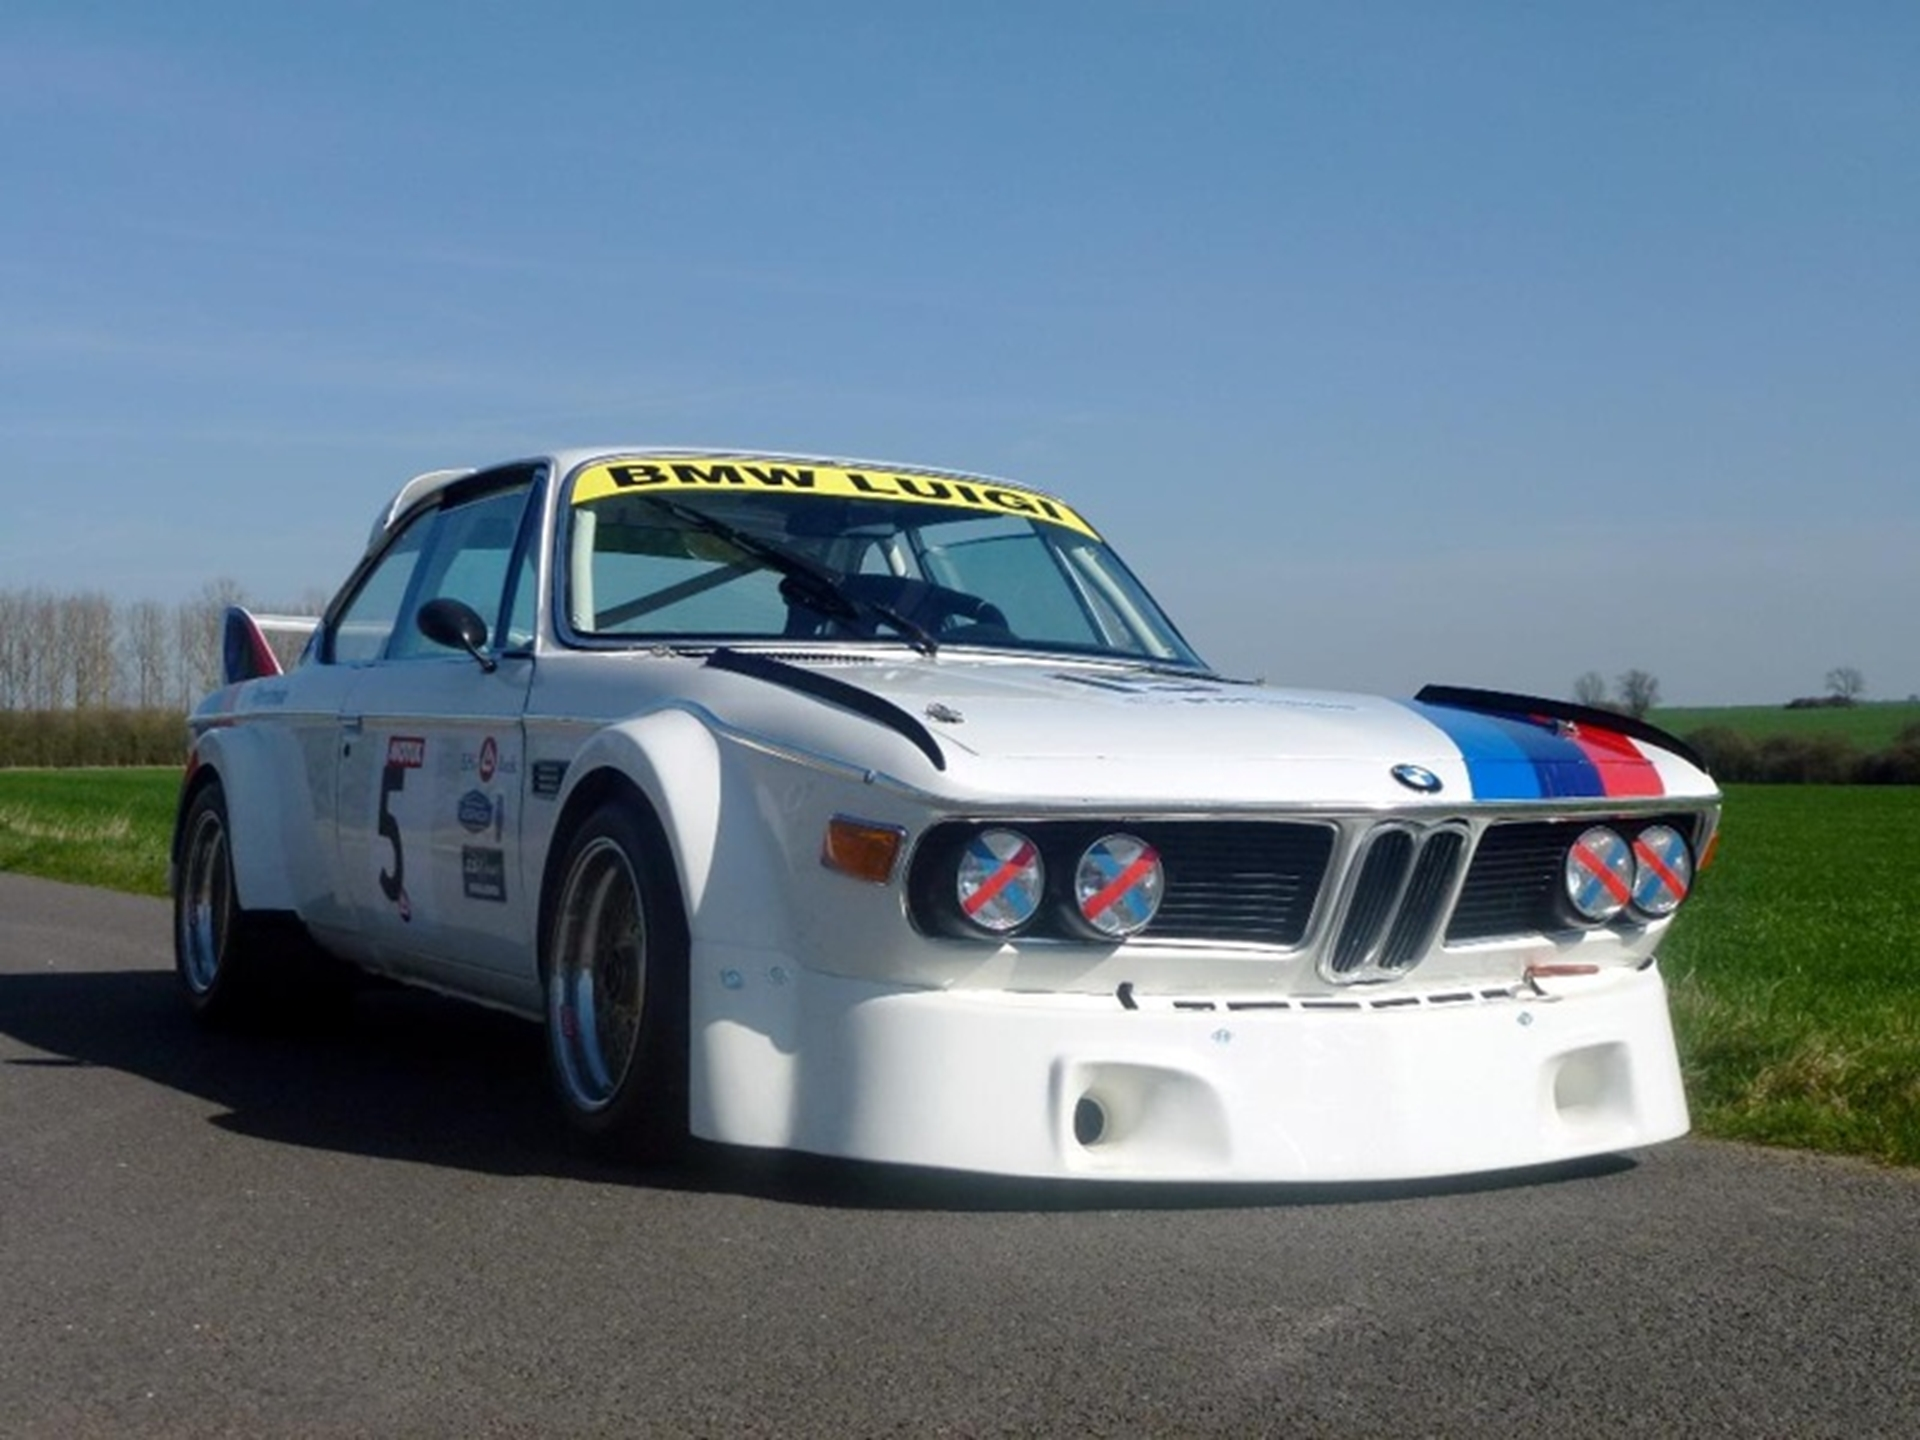 BMW Batmobile race car